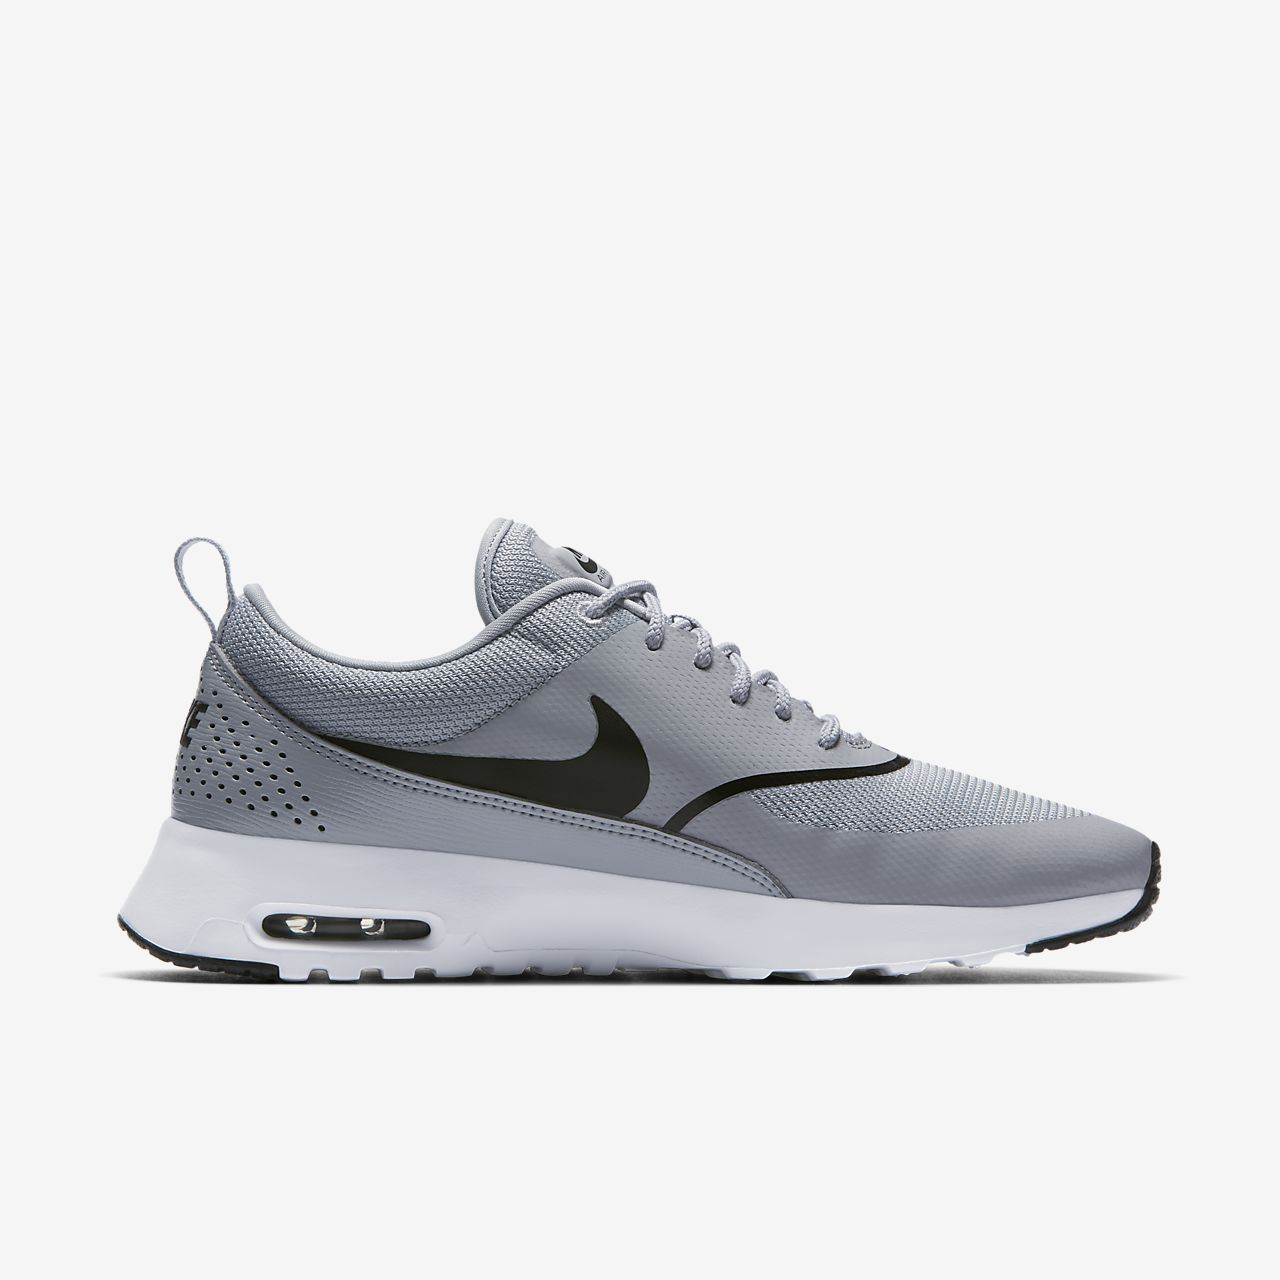 reputable site 63ef9 b10a9 ... Nike Air Max Thea Women s Shoe